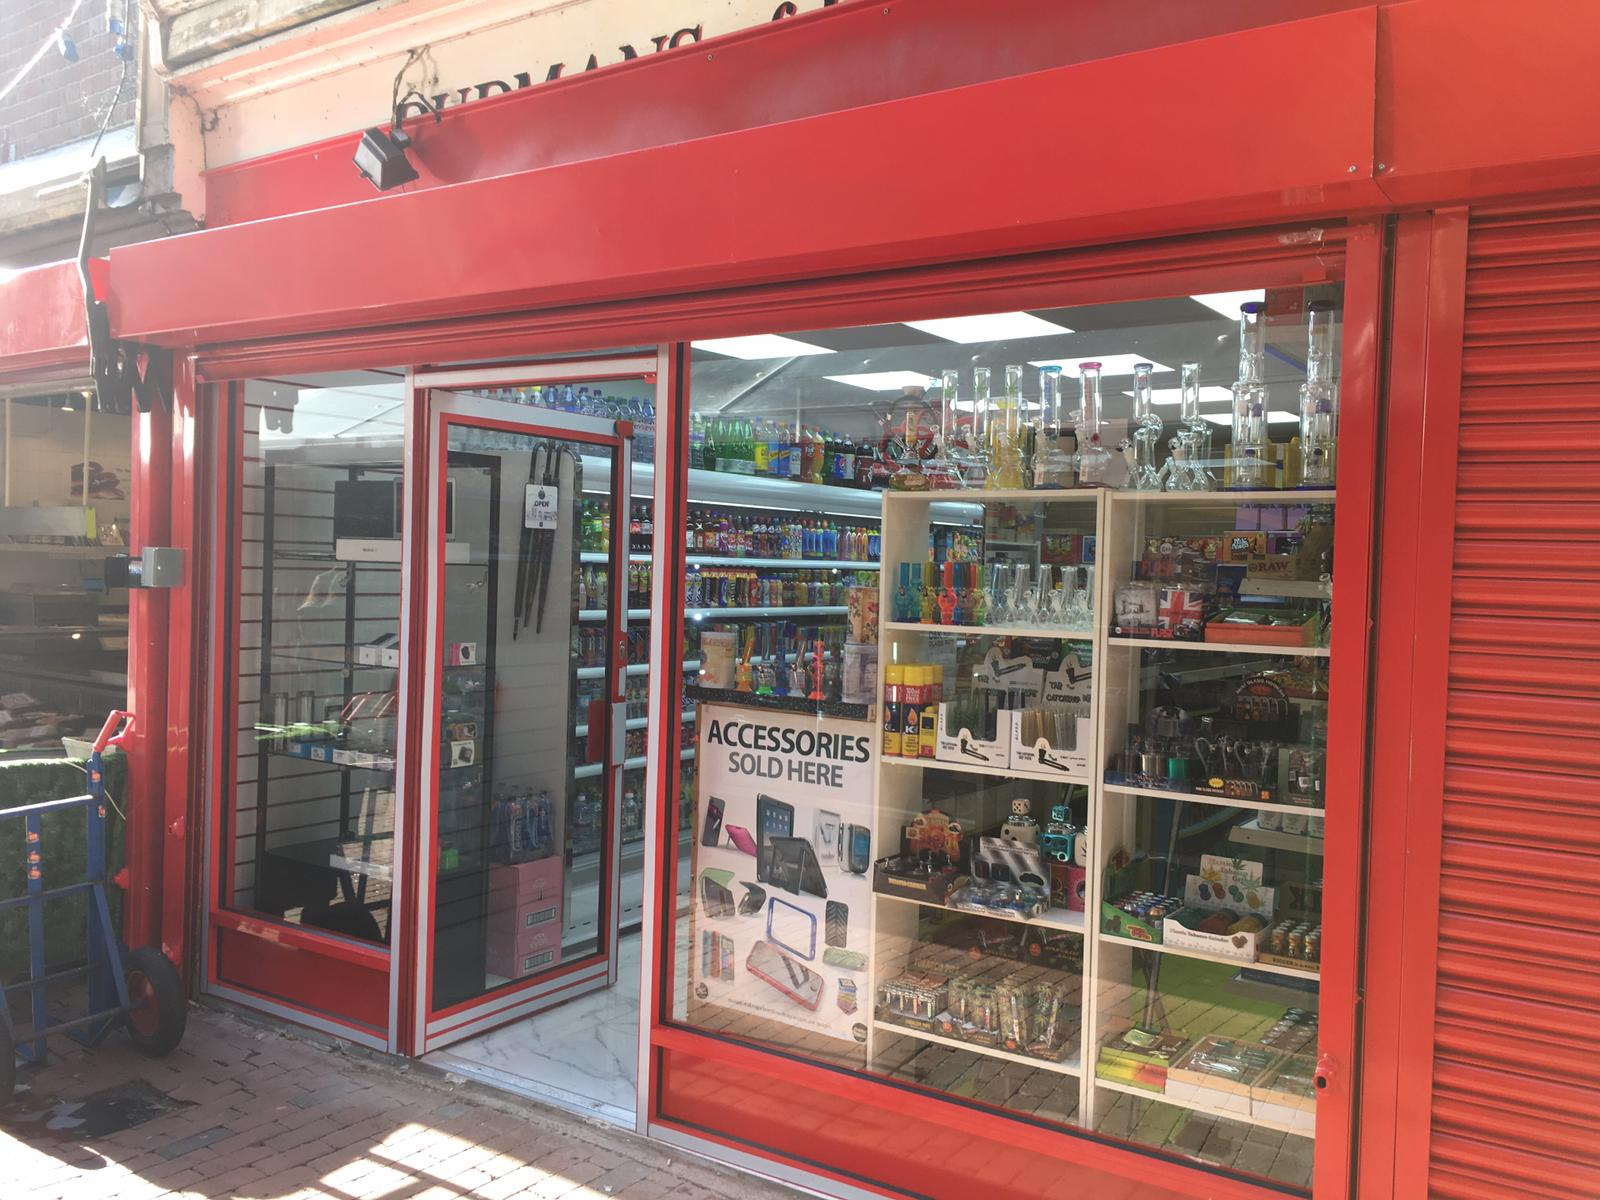 New Reading Food And Wine Shop Fails In Bid To Sell Booze